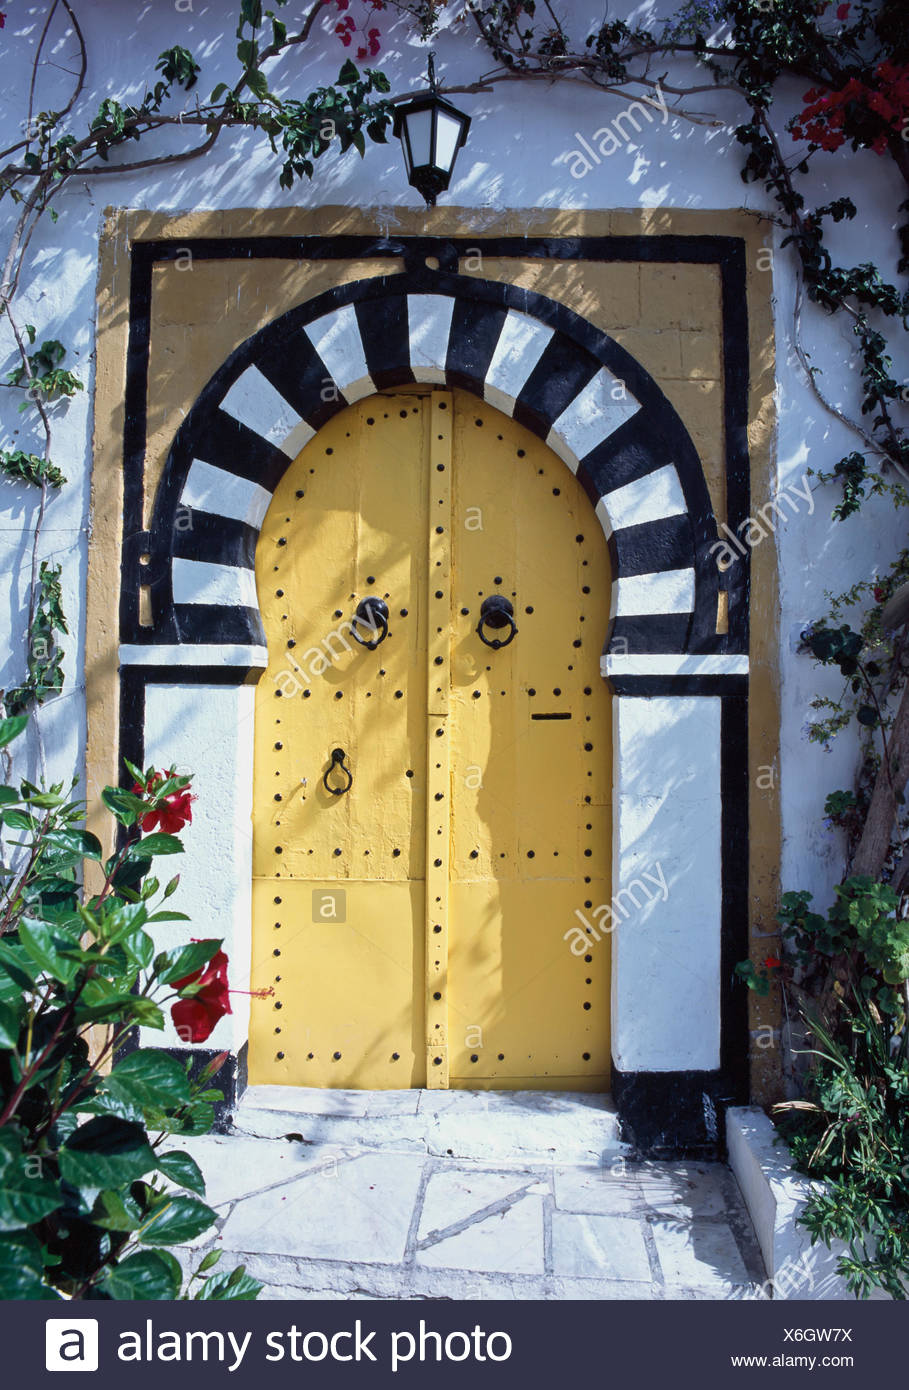 Black And White Arched Doorway With Yellow Doors. - Stock Image